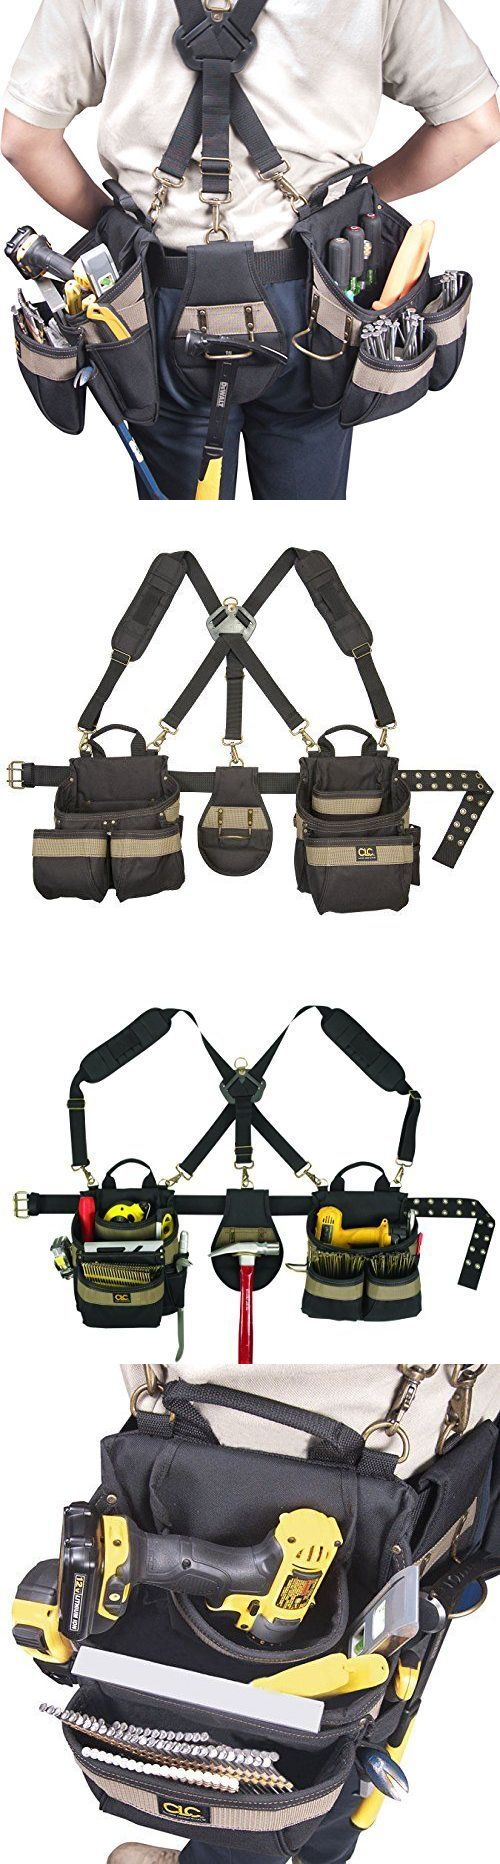 Bags Belts and Pouches 42362: Carpenter Contractor Electrician Construction Tool Belt Pouch Pocket Storage Bag -> BUY IT NOW ONLY: $59.99 on eBay!